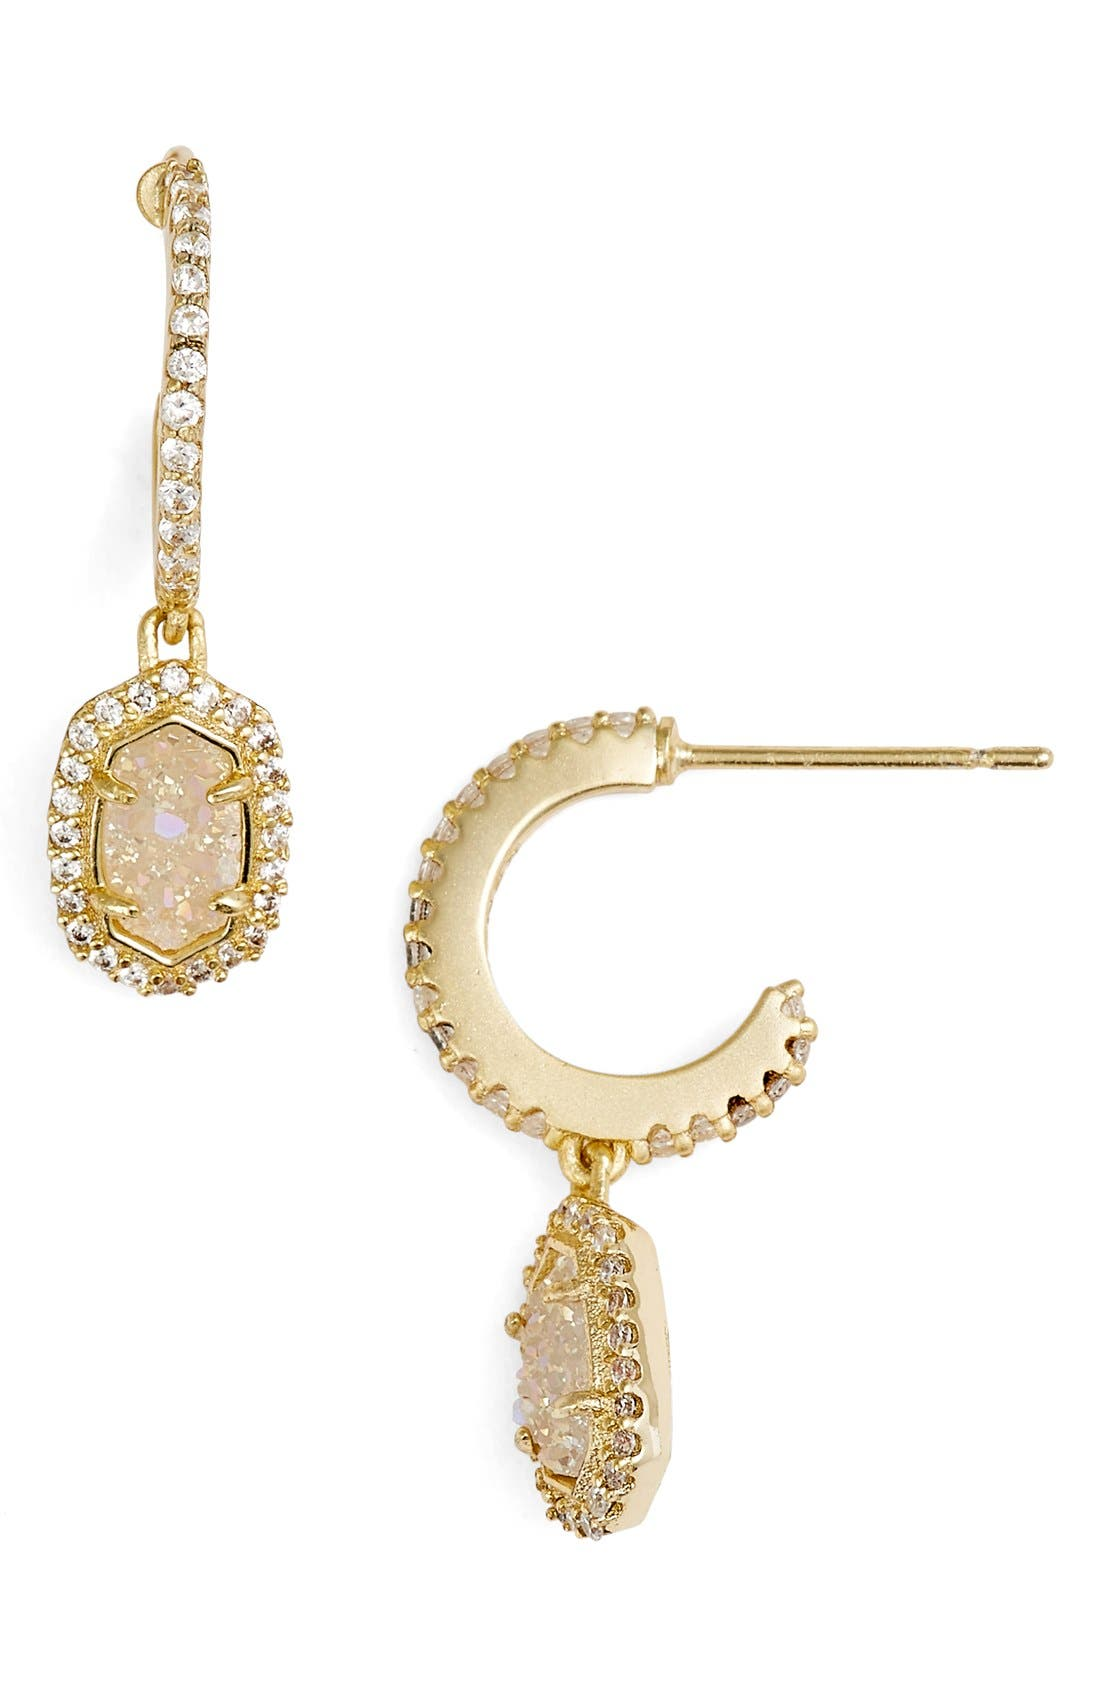 Kendra Scott 'Cale' Hoop Earrings